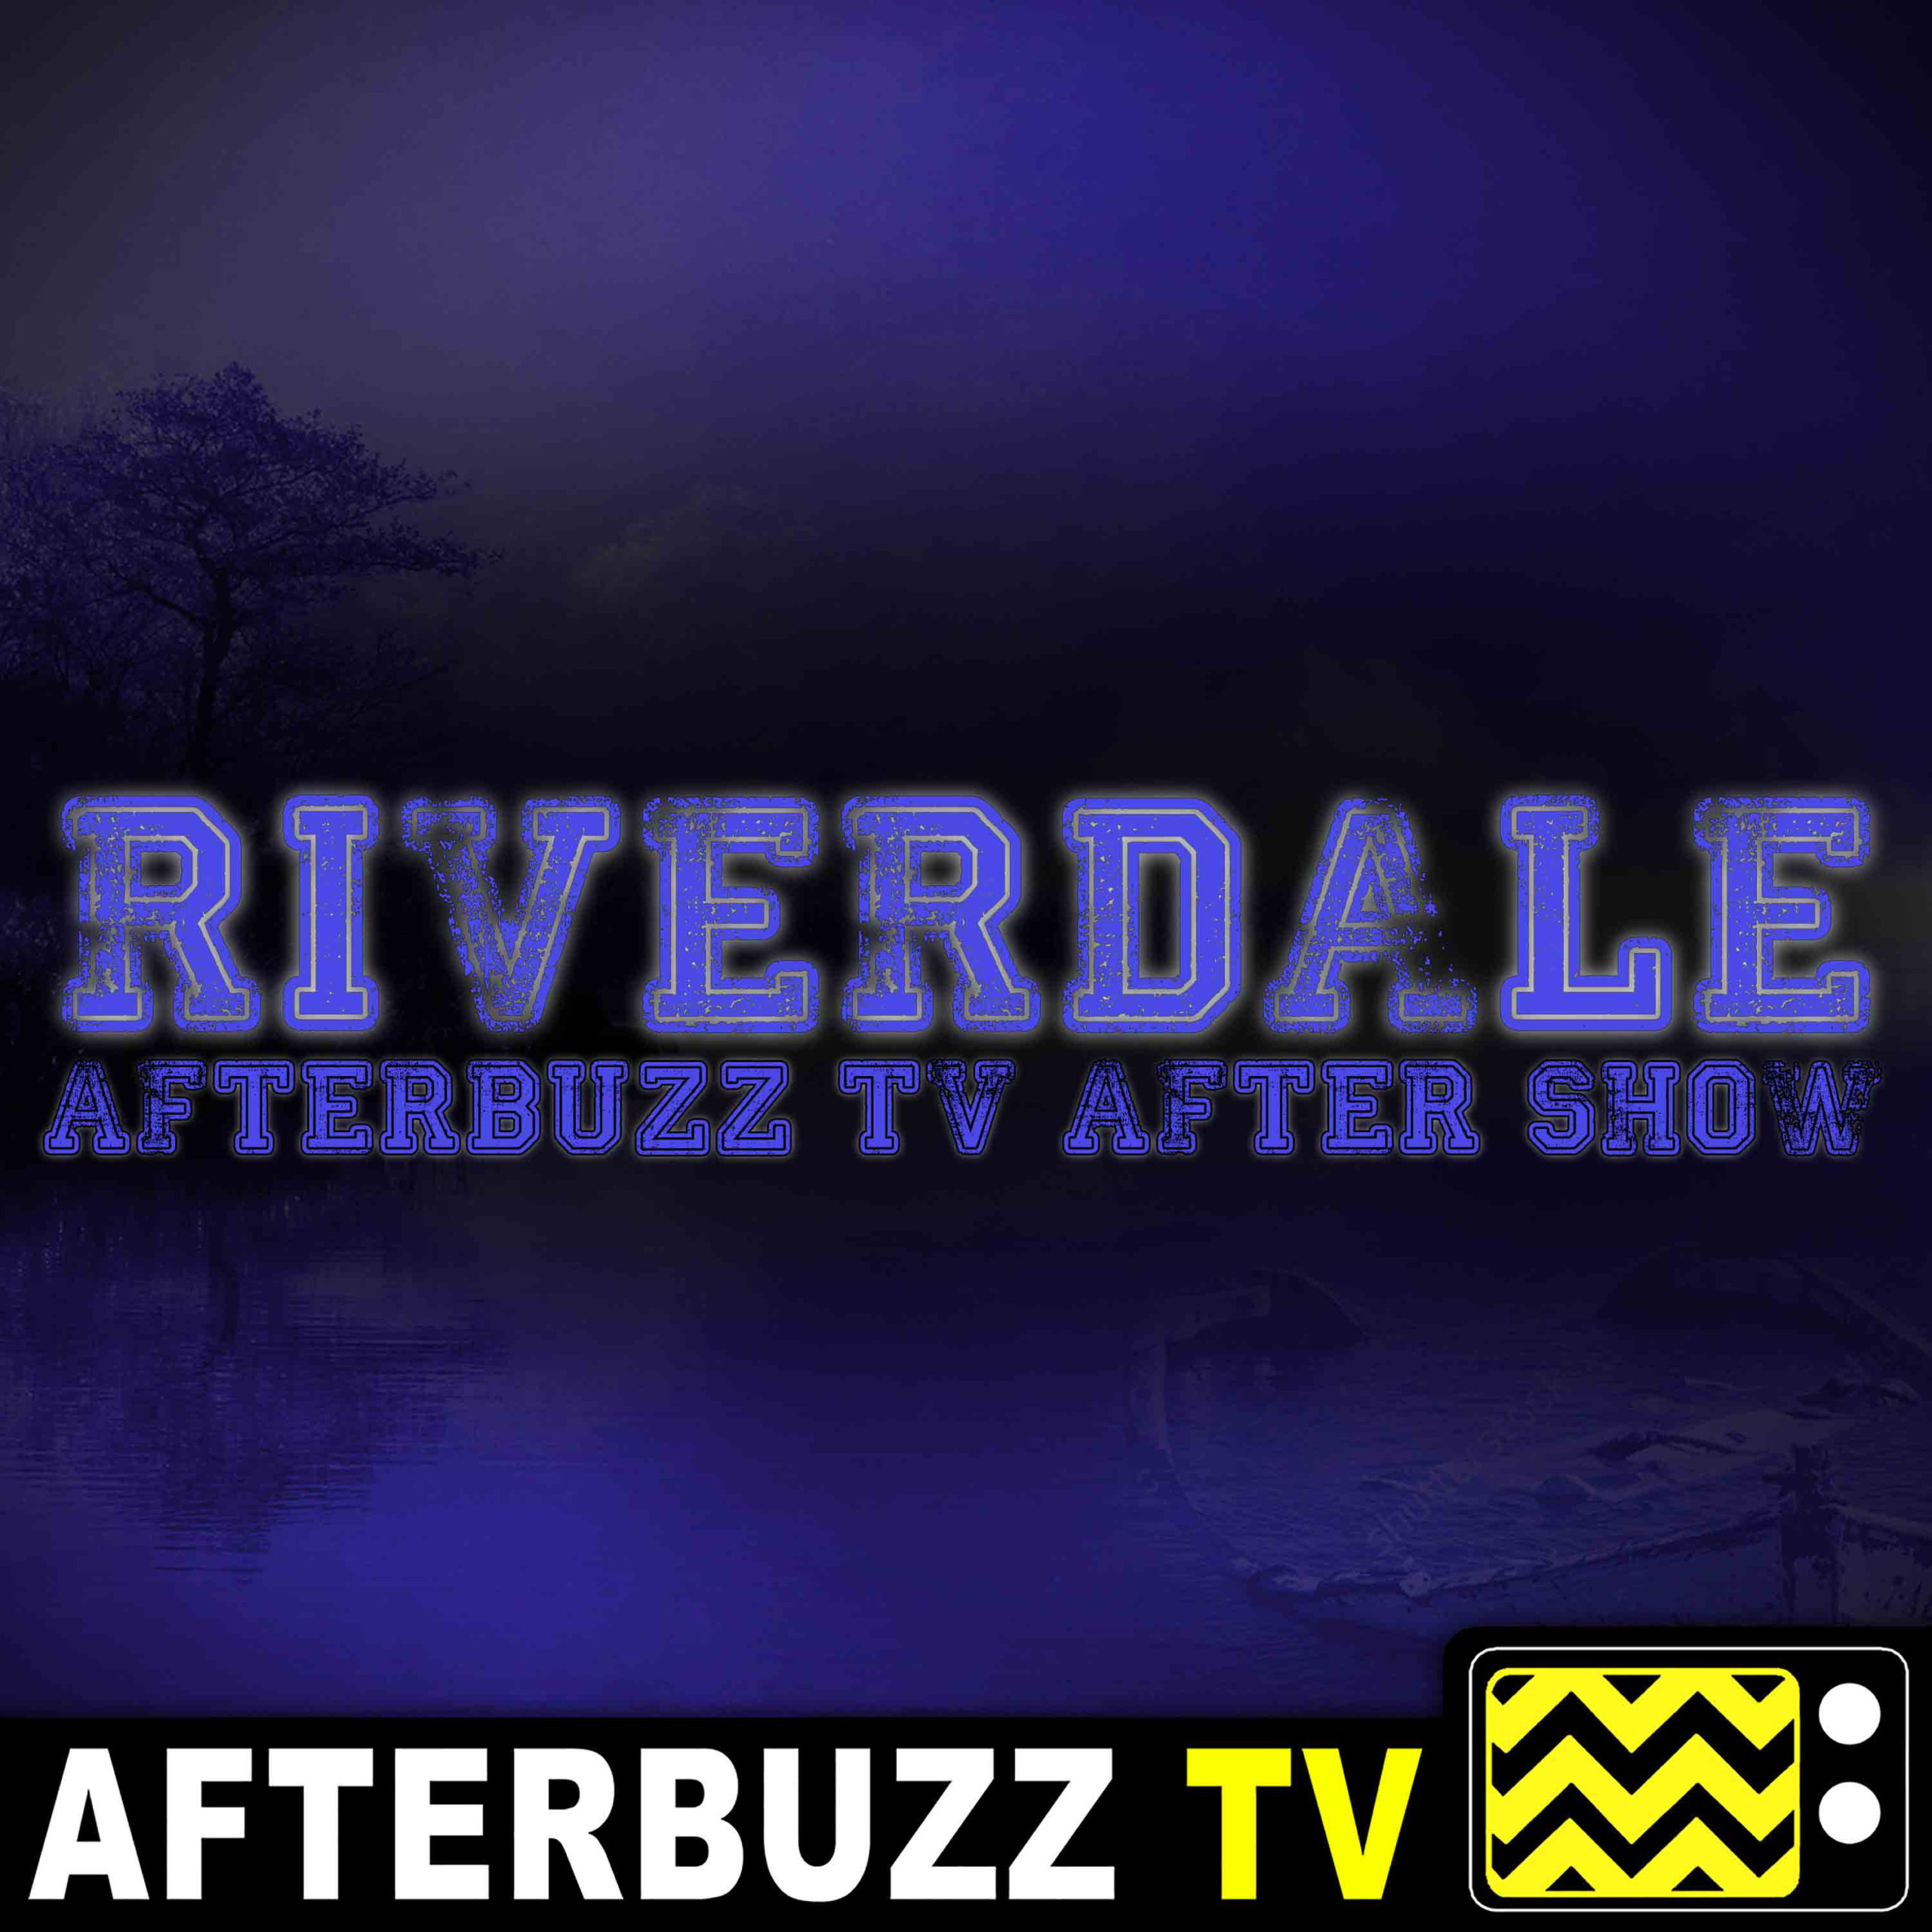 Riverdale S4 E19 Recap & After Show: You're a mean one, Mr. Honey.